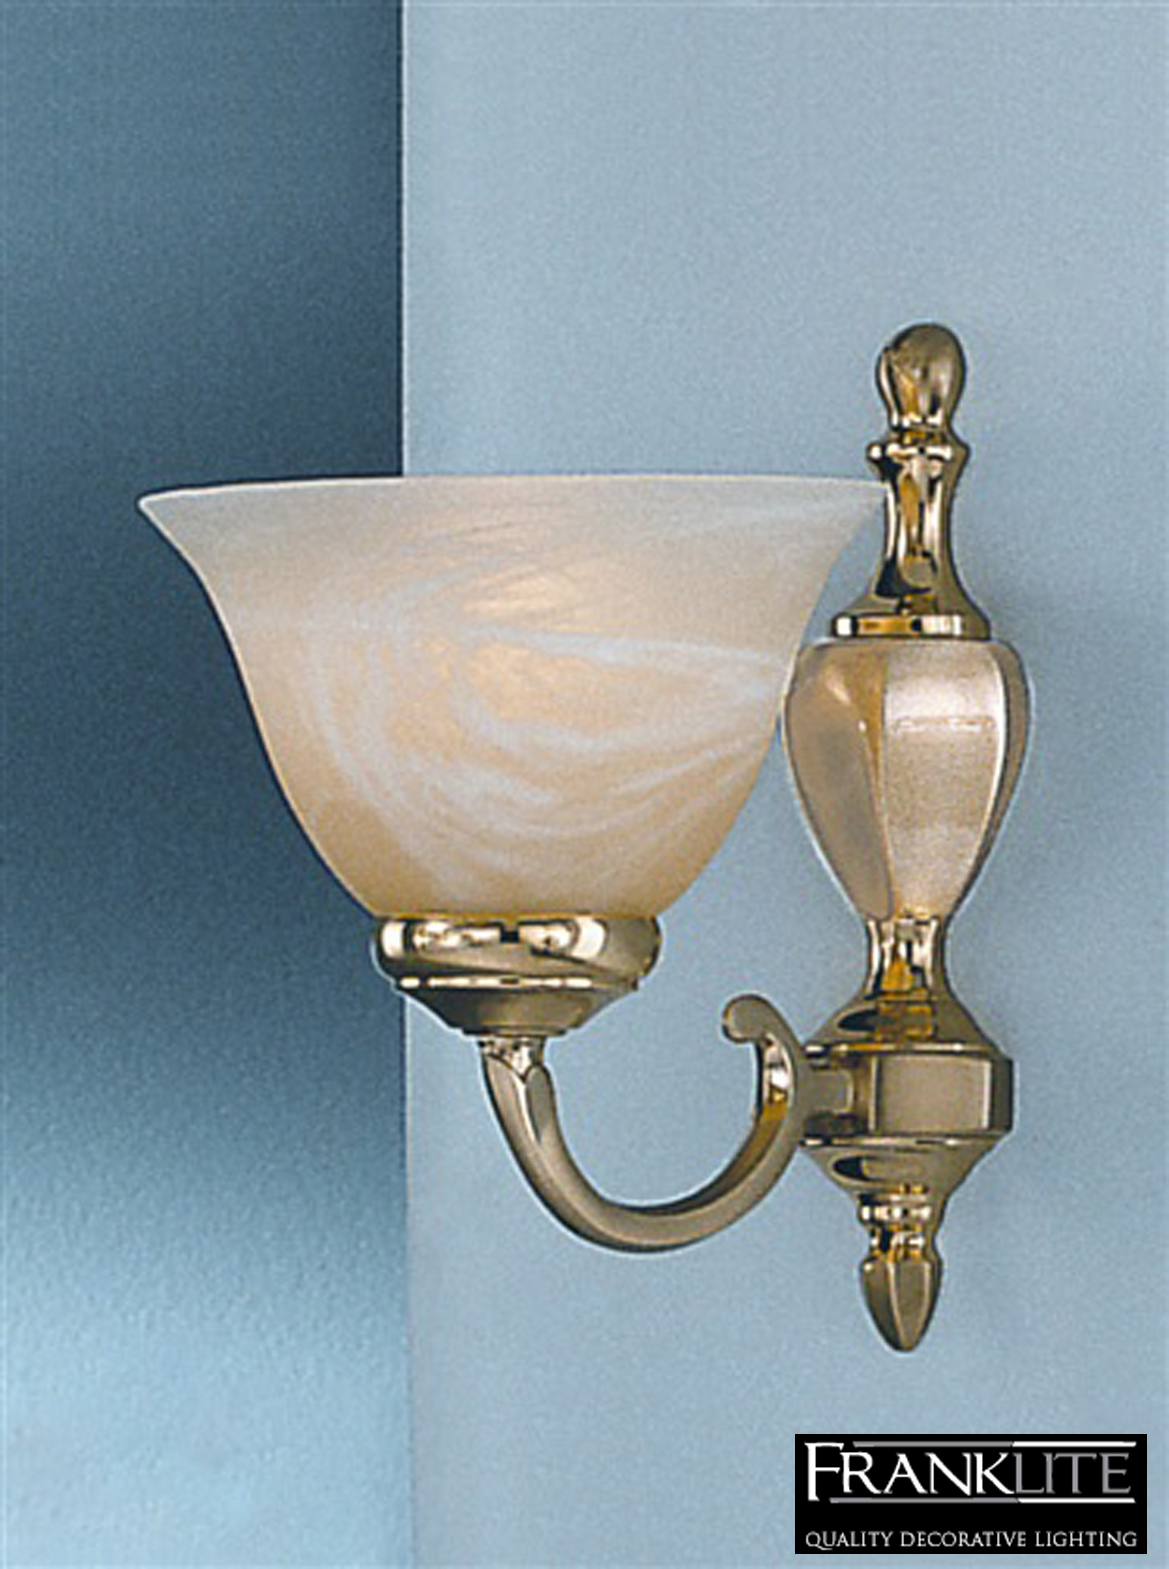 Satin Brass Wall Lights : FRANKLITE MIAMI SATIN & POLISHED BRASS FINISH SINGLE WALL LIGHT - PE8381 from Easy Lighting